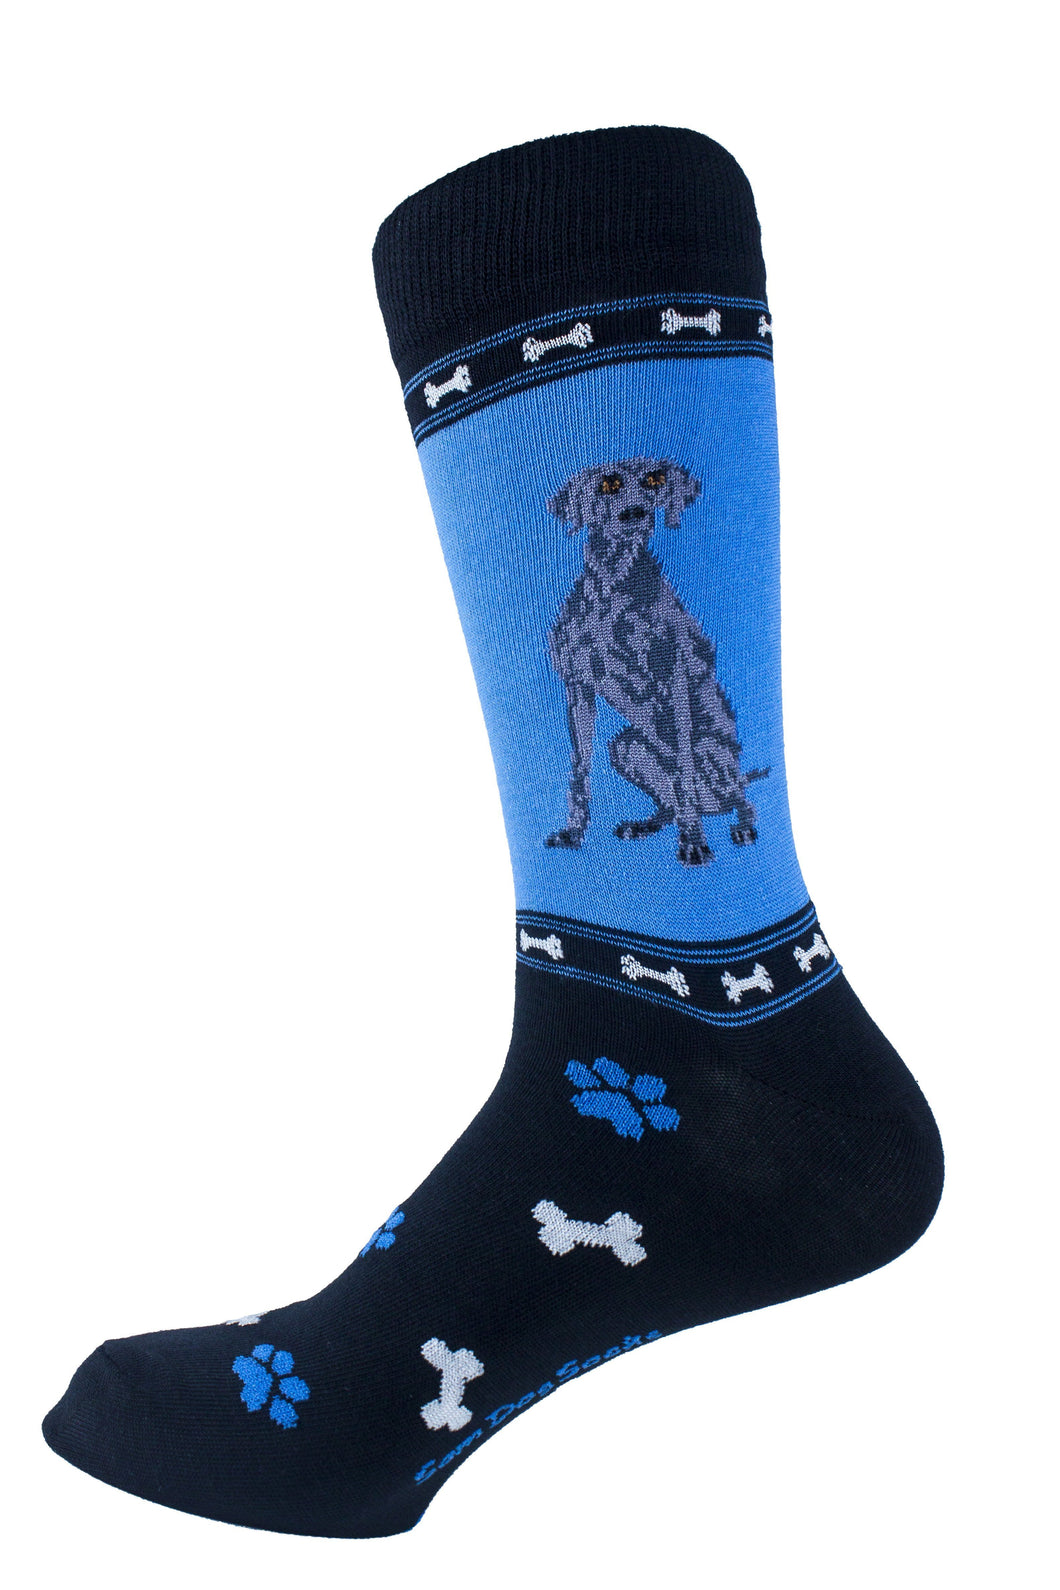 Weimaraner Dog Socks Mens Signature